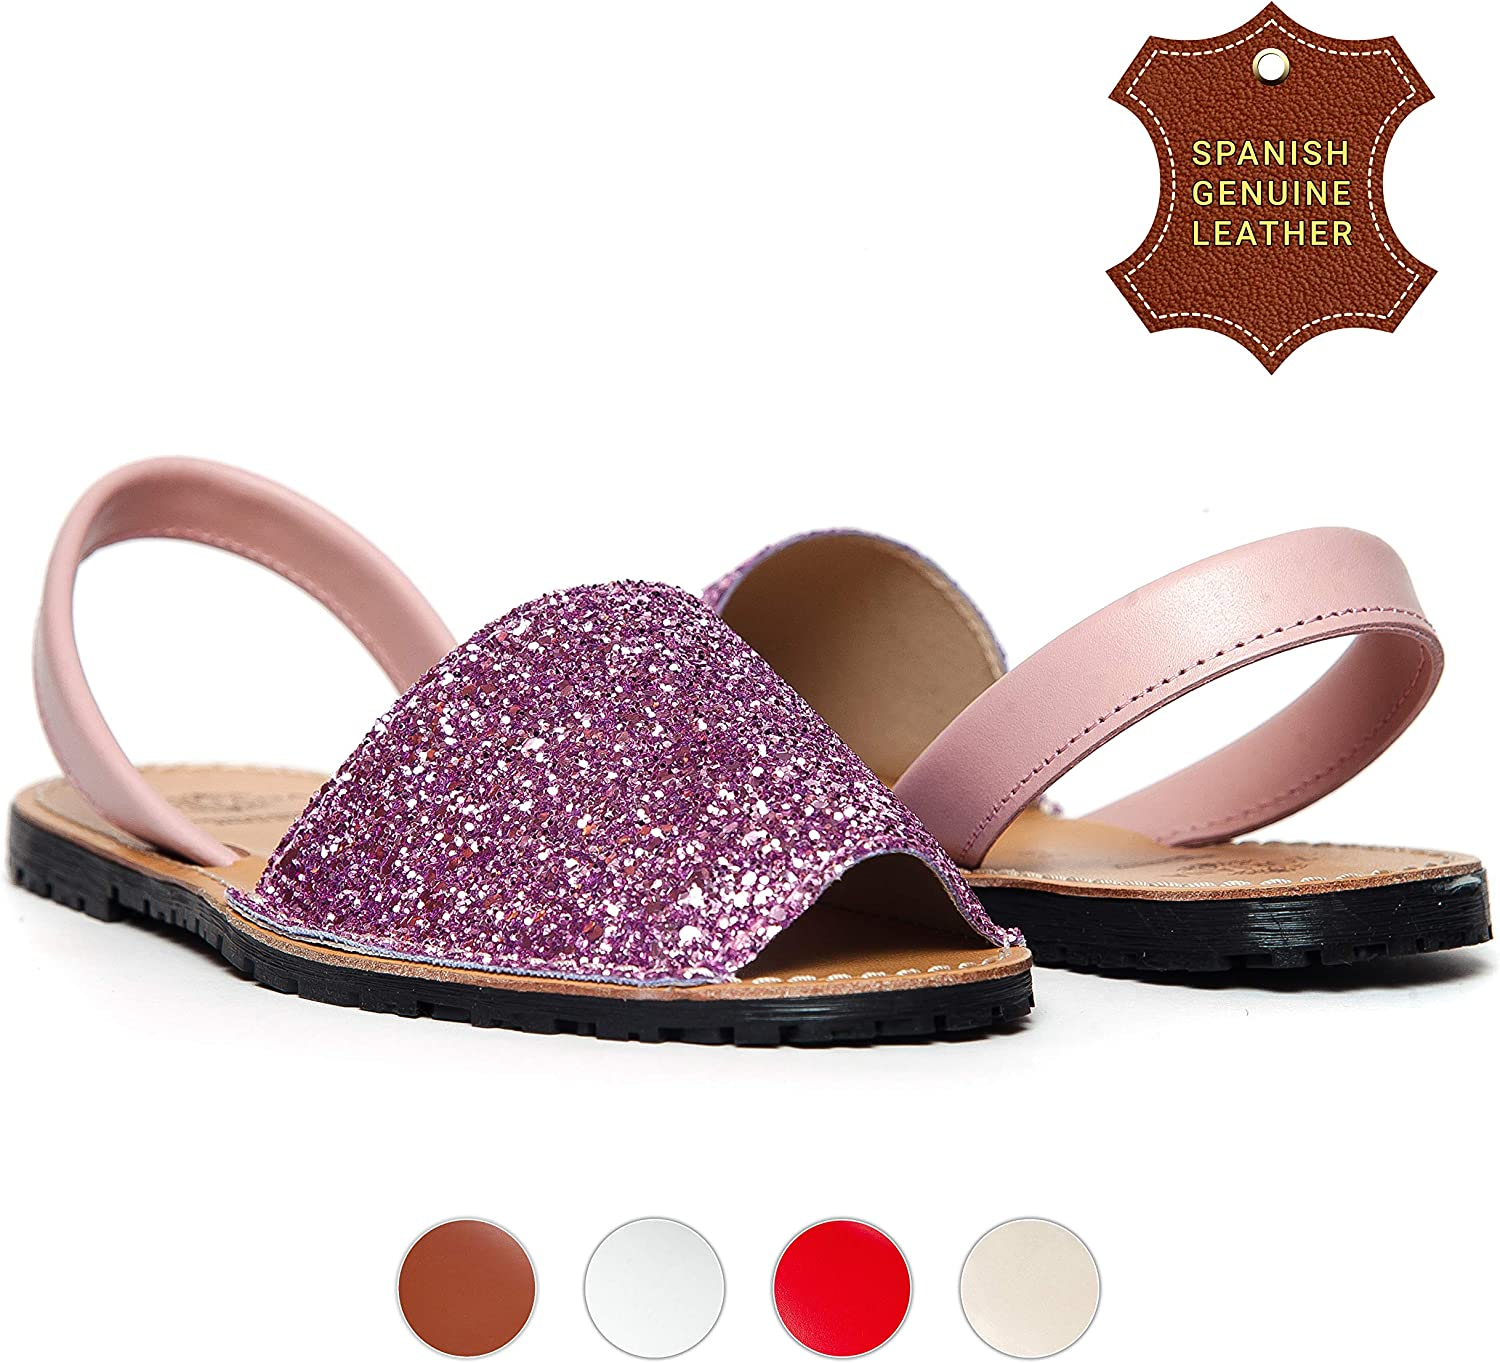 Zoriana Menorca Sandals for Women - Casual Slingback Womens Flat Spanish Leather Sandals